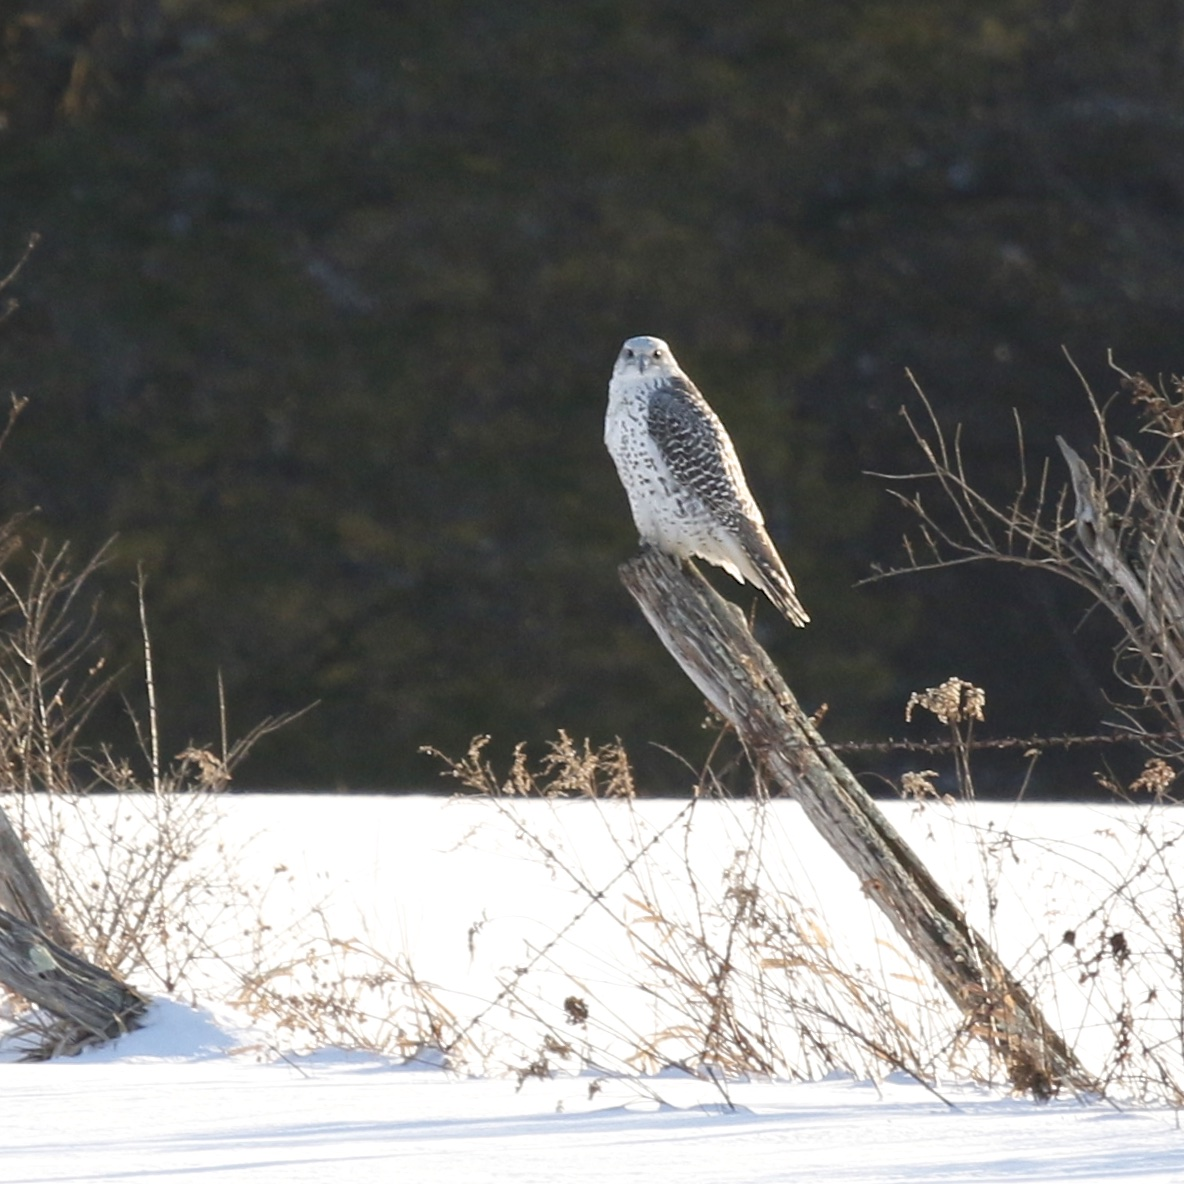 ~The Ulster County Gyrfalcon on a nice perch on Bruyn Turnpike in Wallkill, NY, 2/10/15.~